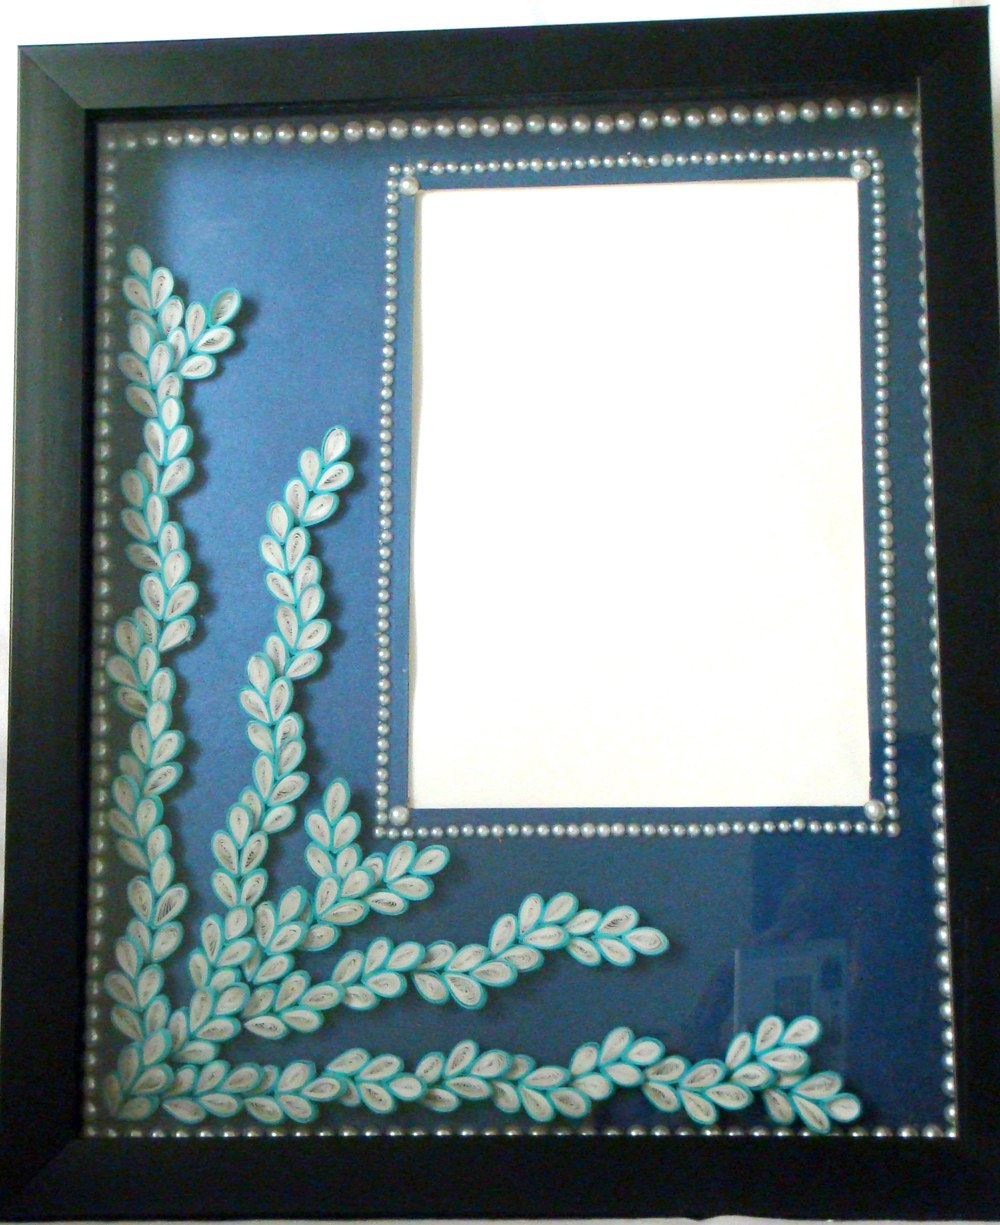 how to make a simple photo frame at home | Frameswalls.org